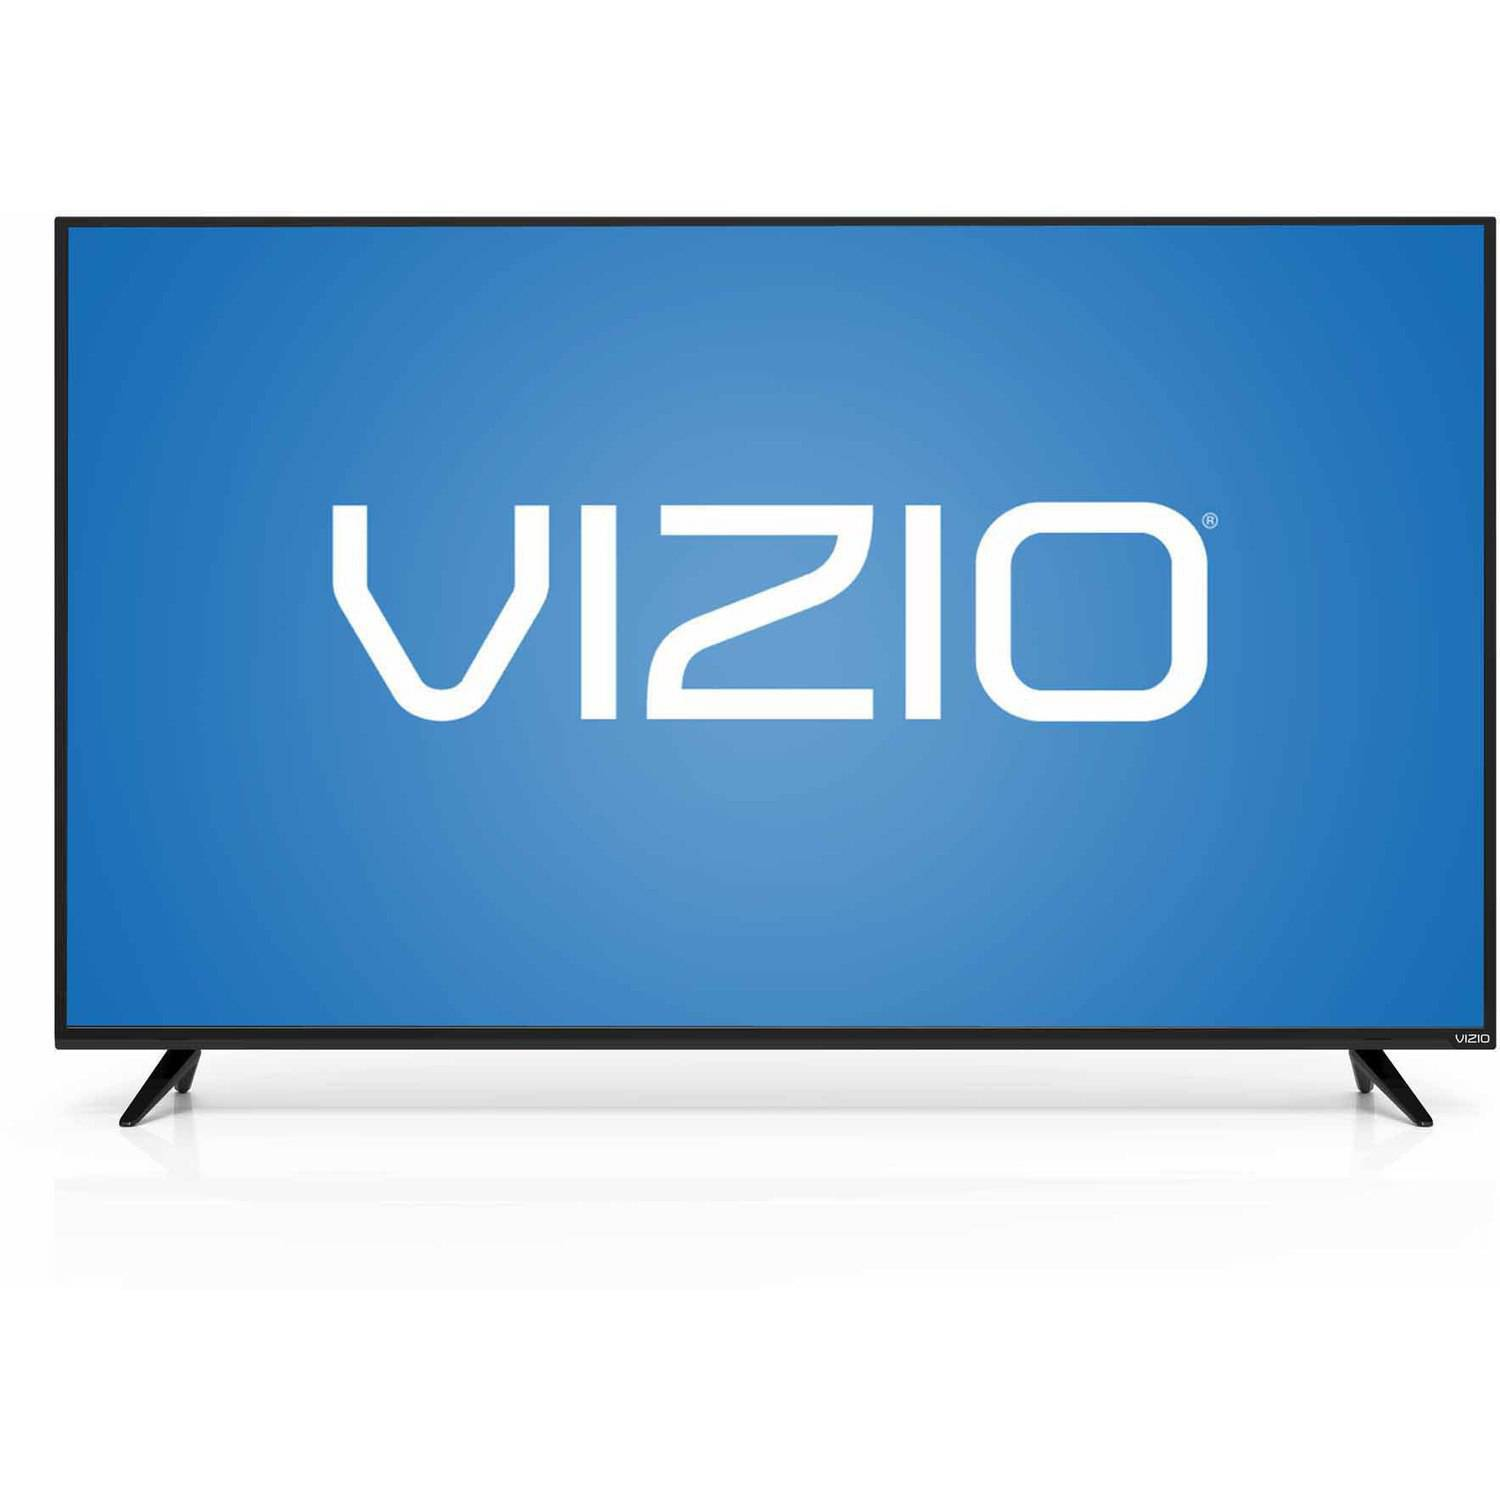 "Refurbished VIZIO E65x-C2 65"" Class 1080p 120Hz Full-Array LED Smart HDTV"